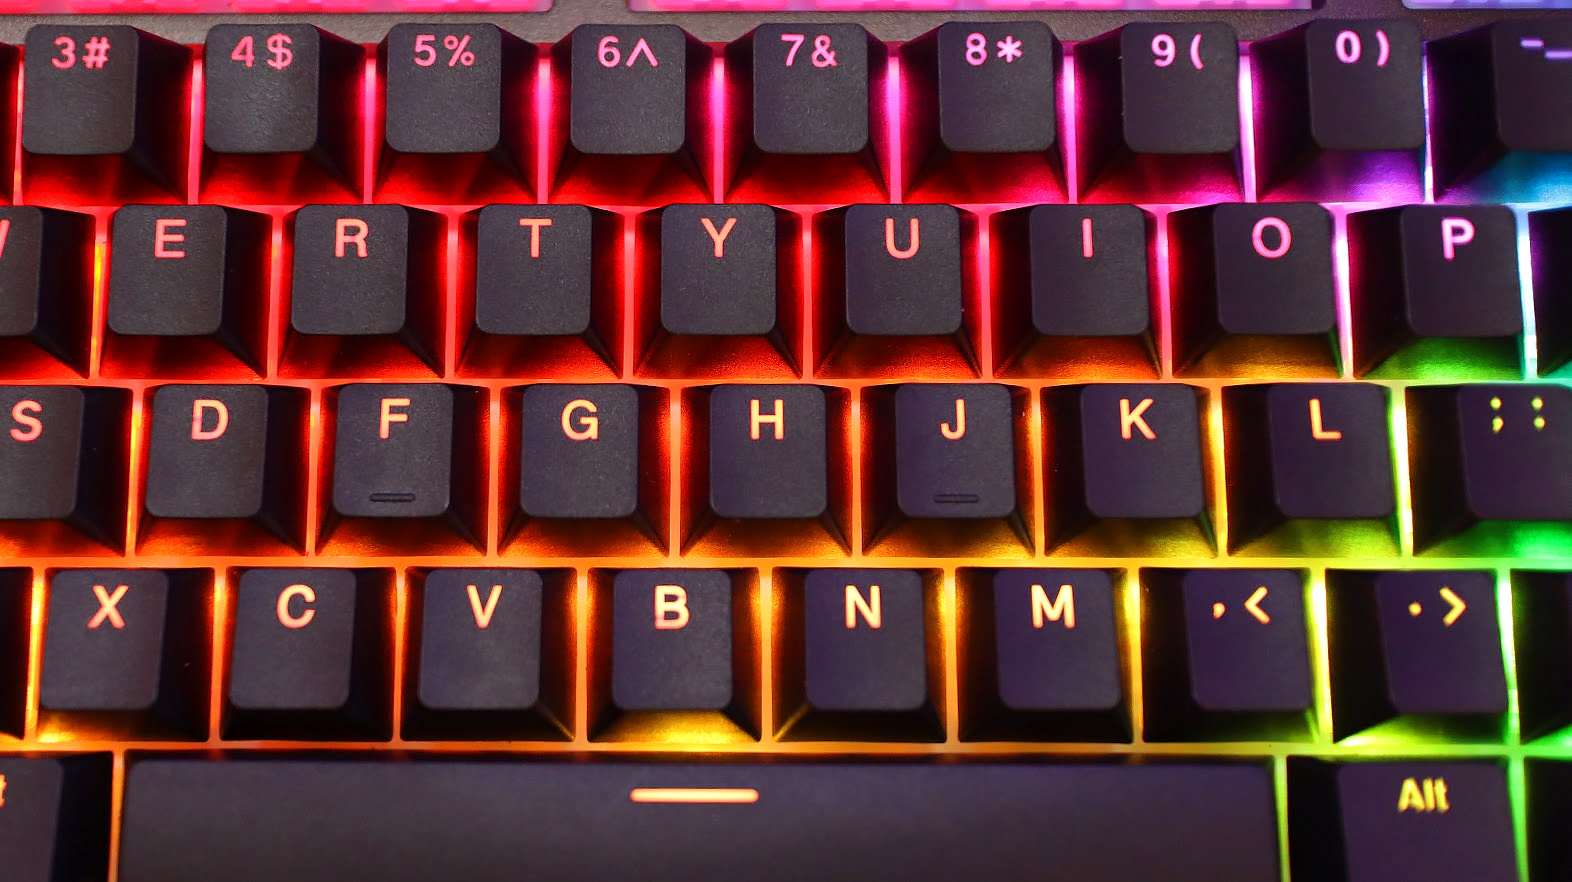 A white panel spreads RGB lighting evenly under the keys